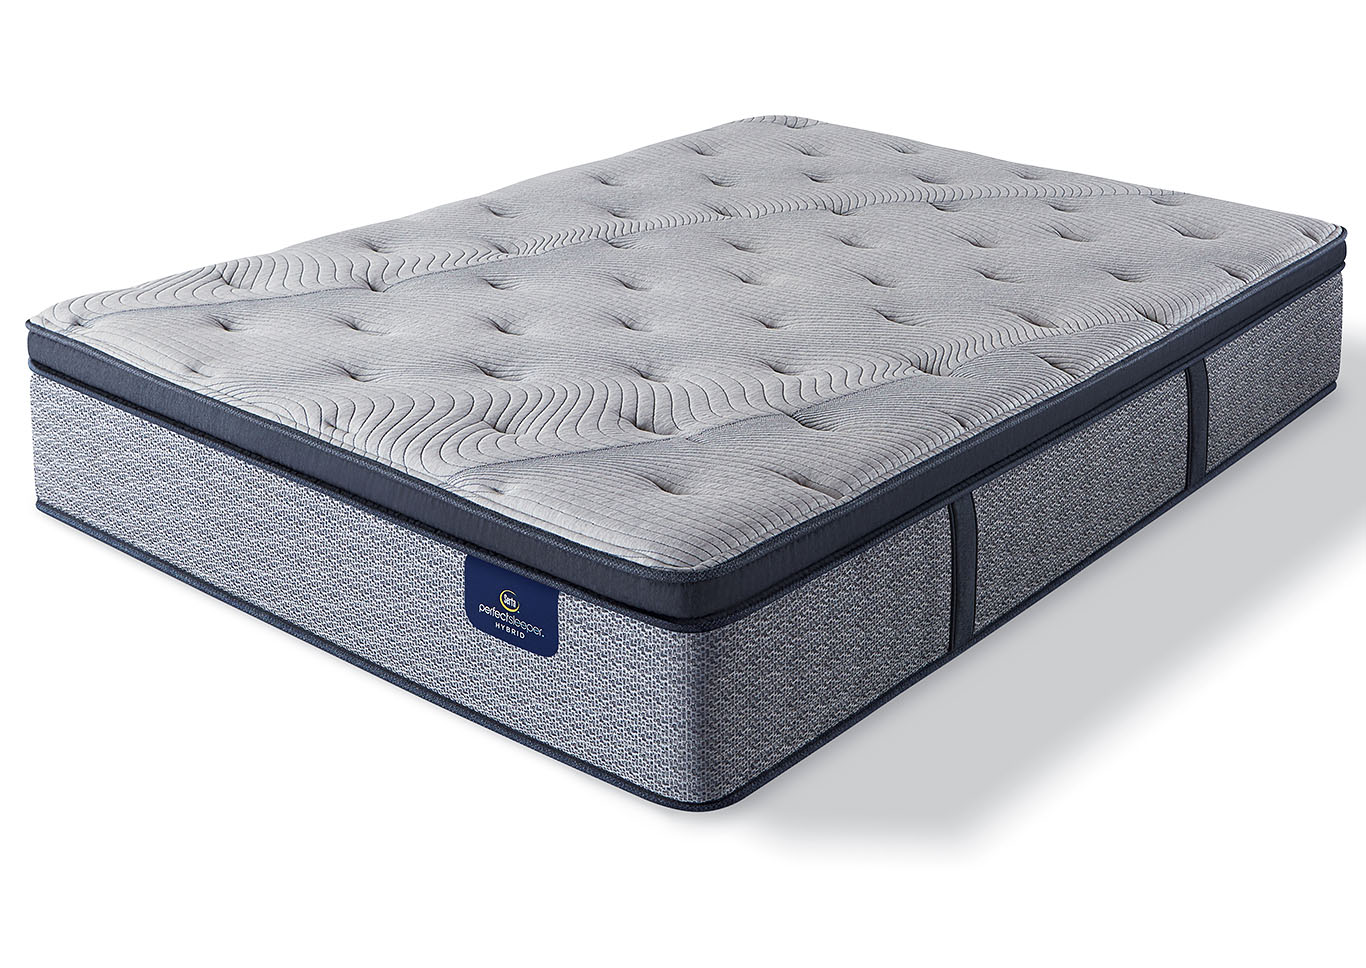 Standale II Pillow Top Firm Full Mattress,Huffman Koos